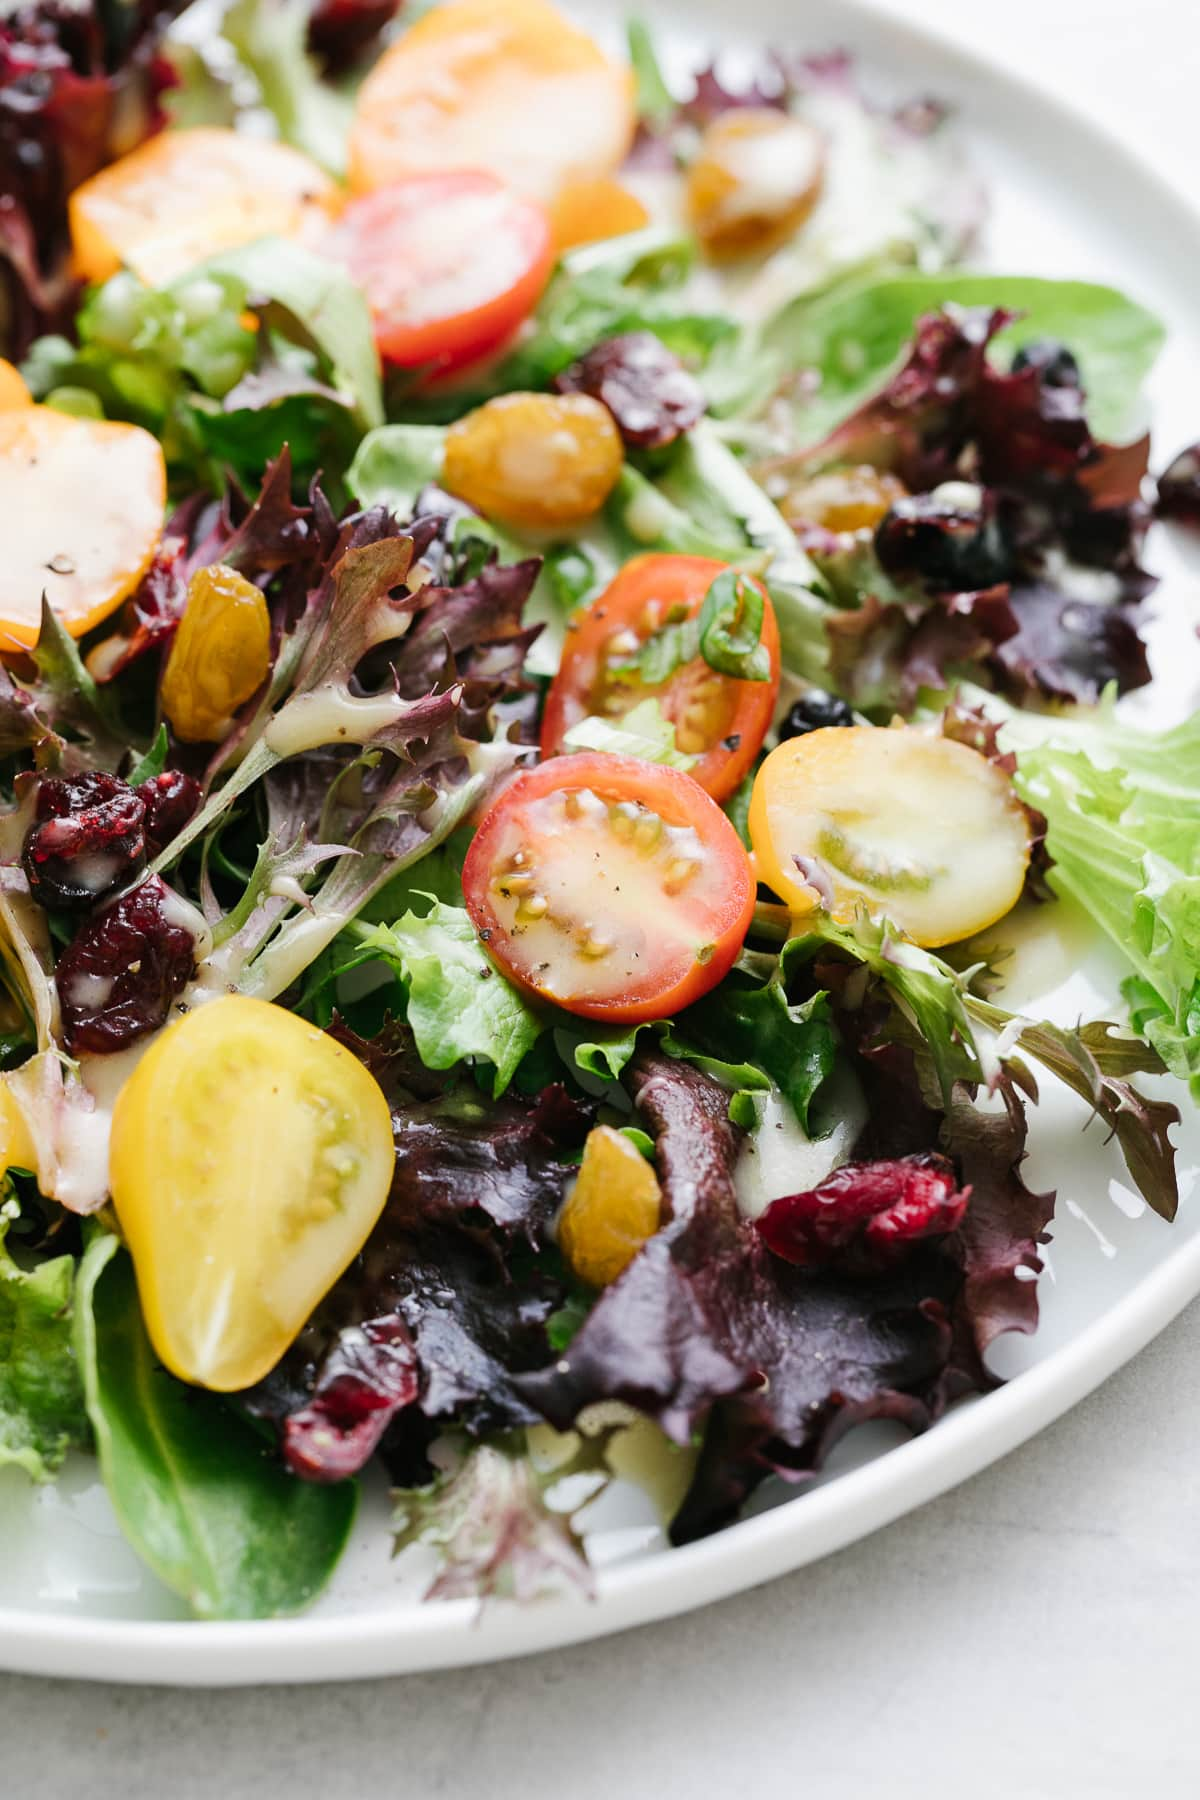 up close, side angle view of a salad with healthy maple dijon dressing with items surrounding.